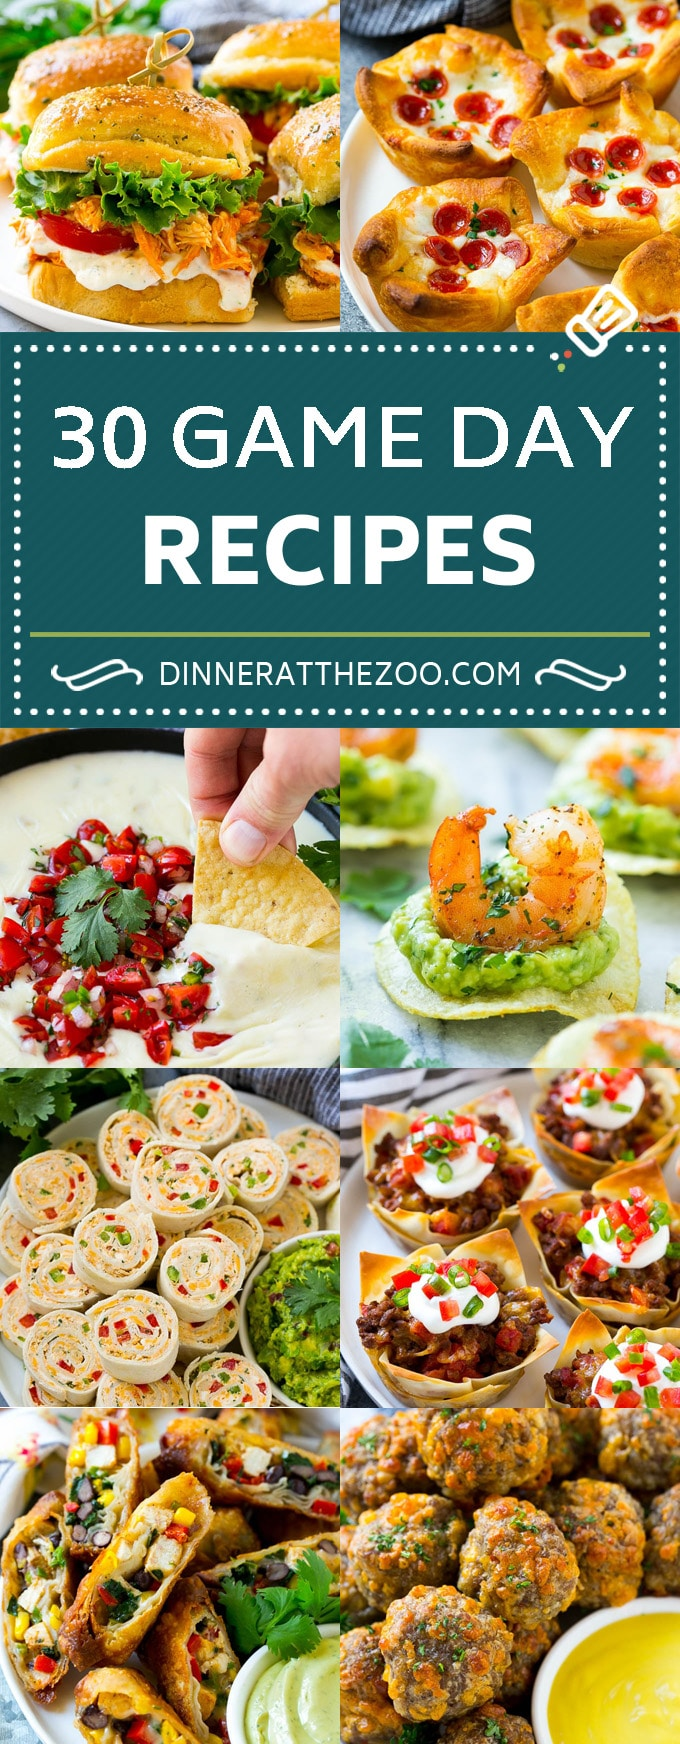 30 Game Day Recipes | Super Bowl Recipes | Party Appetizers #superbowl #gameday #appetizers #snacks #dinneratthezoo